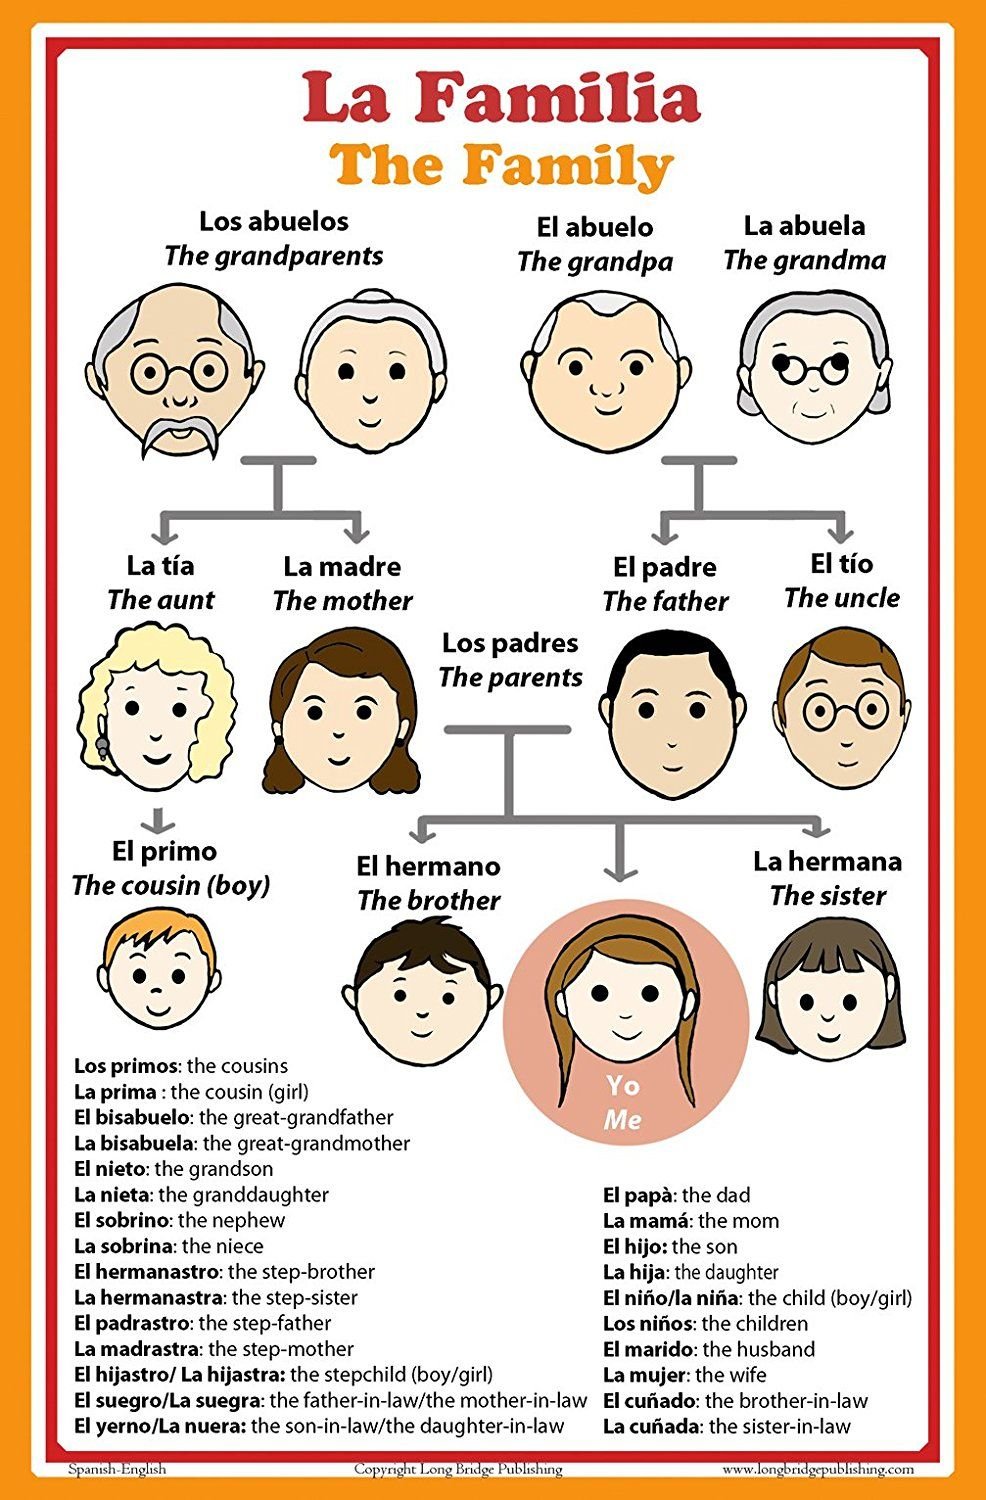 Spanish Language School Poster Words About Family Members Wall Chart For Home And Classroom Bili Italian Language Italian Language Learning Italian Words,Lawn Aeration Plugs